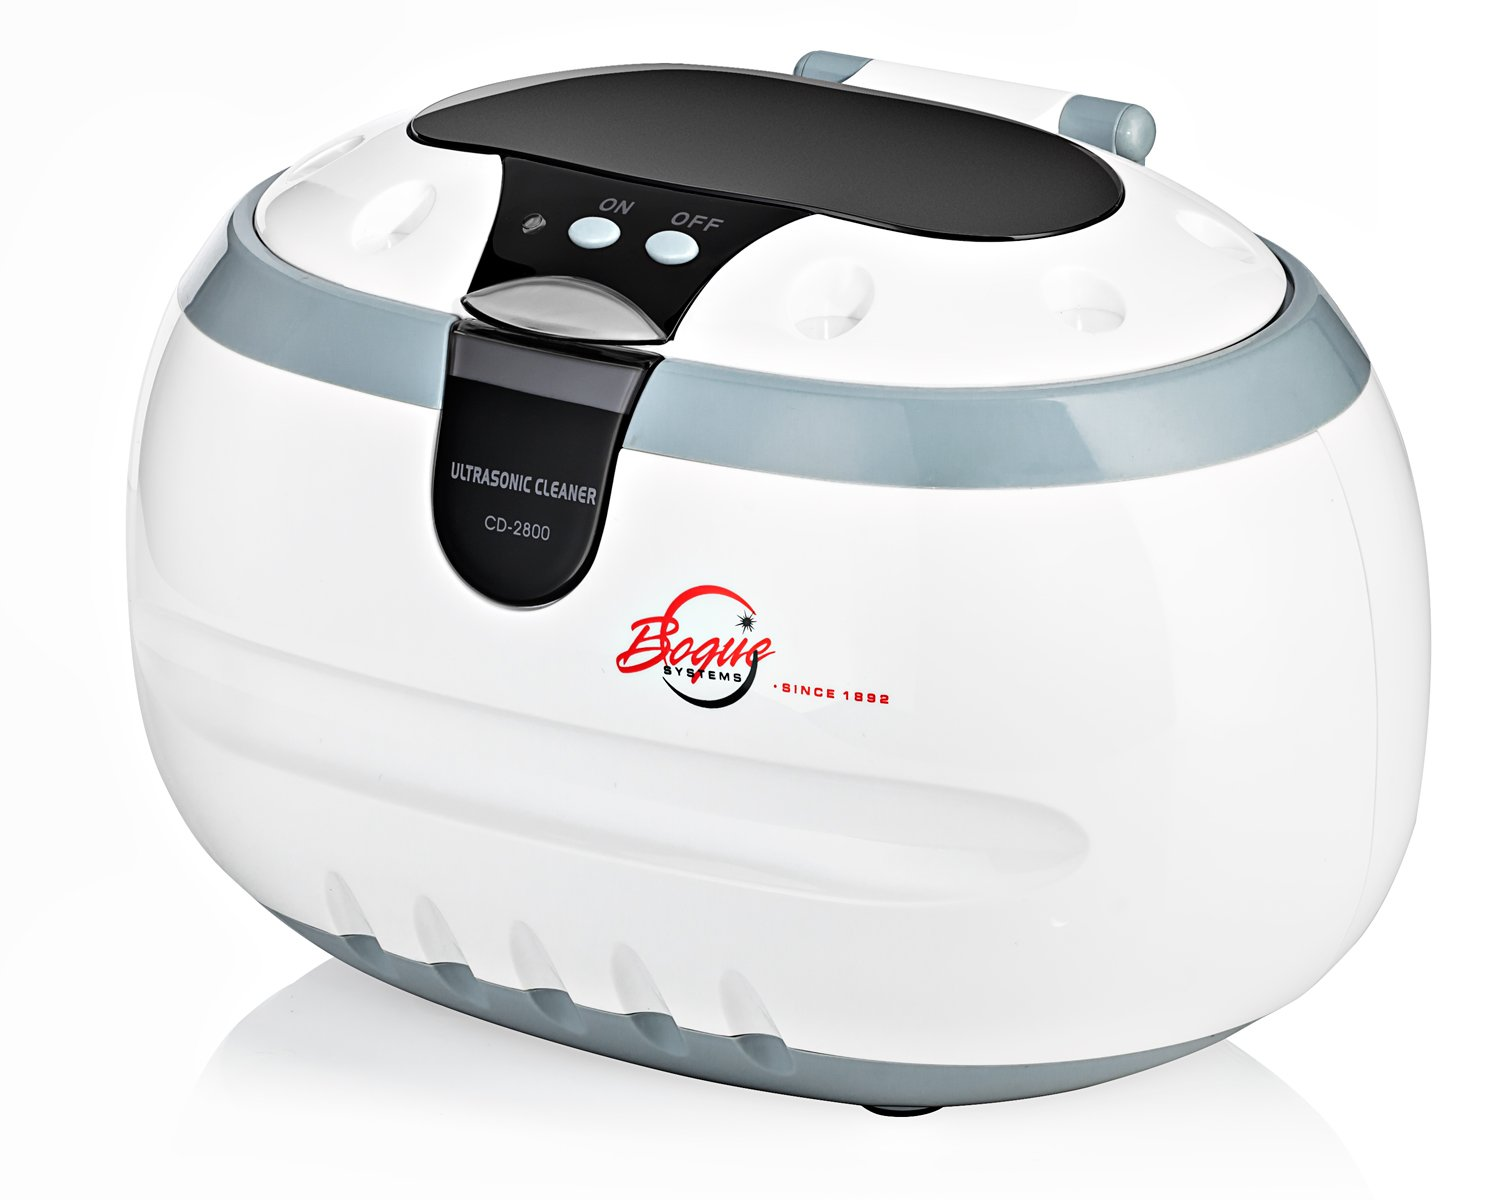 Bogue Systems - Professional Ultrasonic Cleaner (BJC-1259 / CD-2800) - Cleans Jewelry, Optics, Eyeglass, and Other Delicate Items